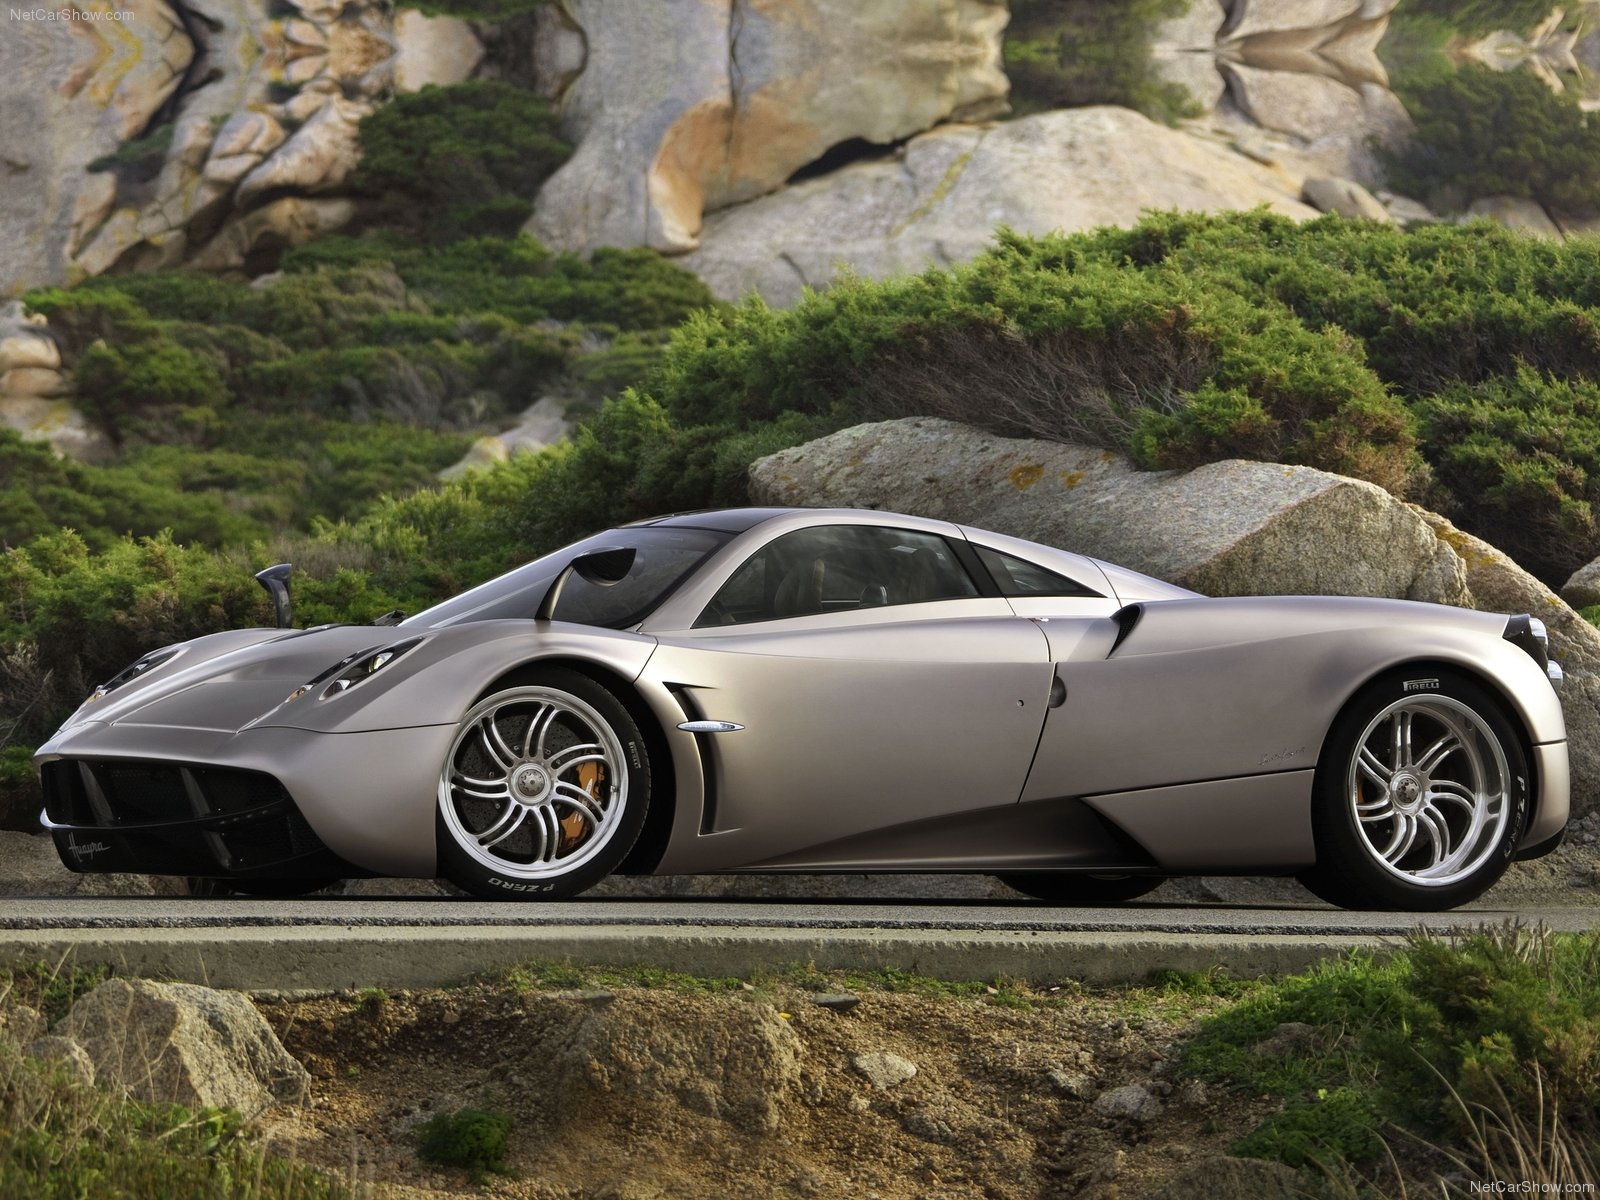 Pagani-car-wallpaper-wp421640-1